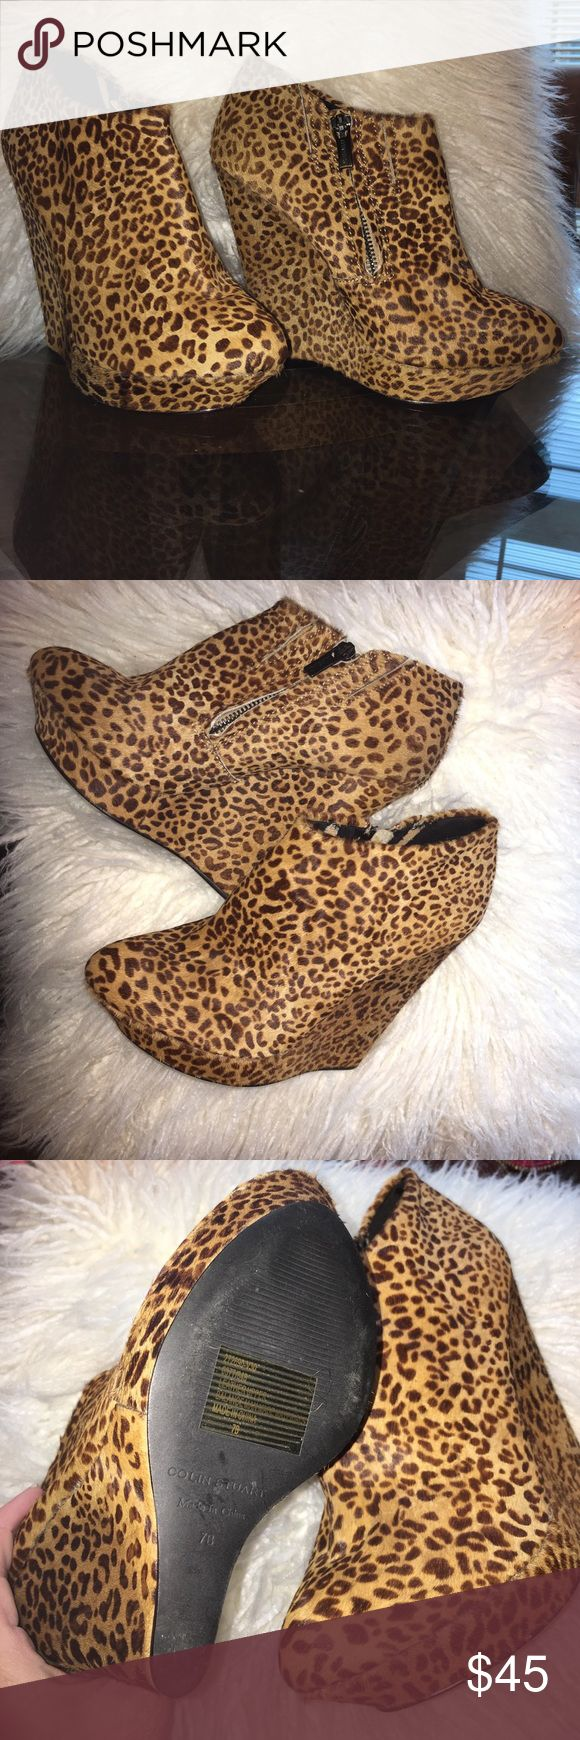 Colin Stuart booties Colin Stewart super cute fur leopard print booties I only wore these once EUC Colin Stuart Shoes Ankle Boots & Booties